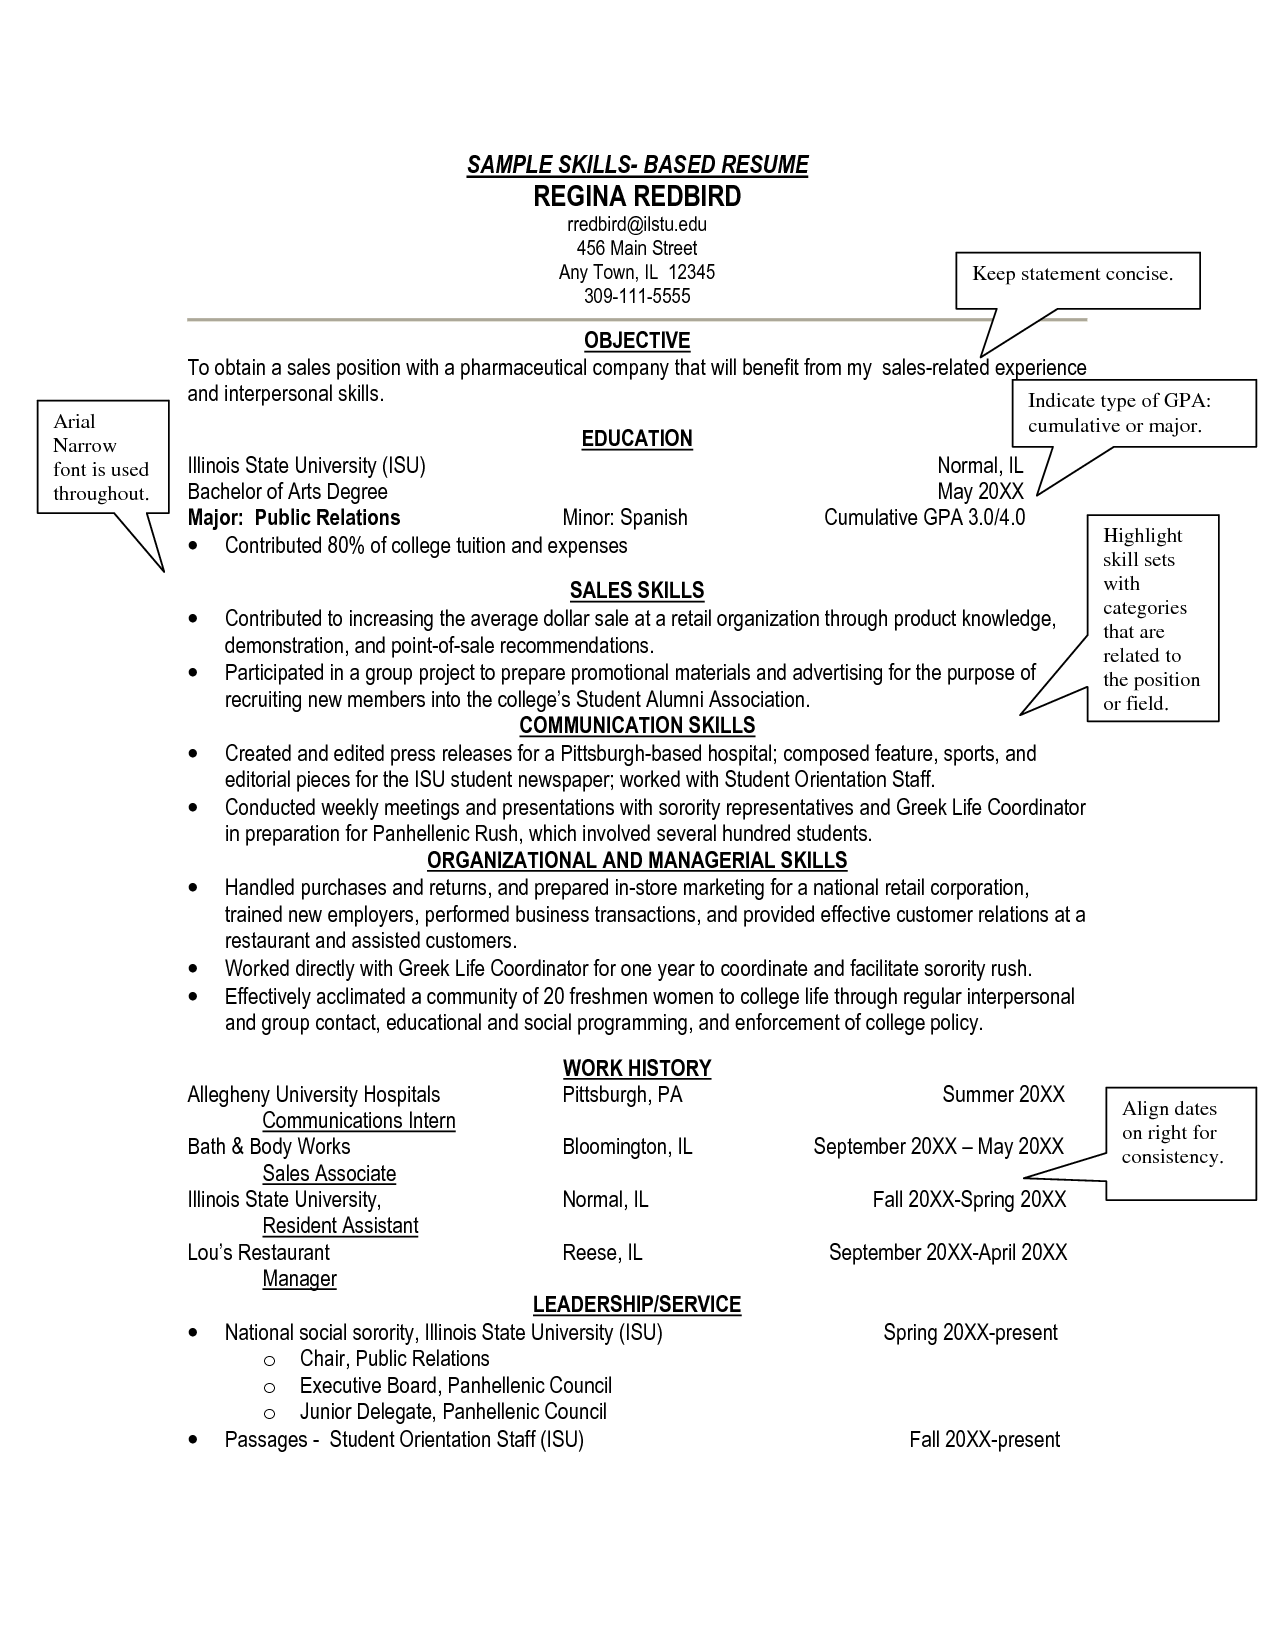 Examples Of Skills For Resume Impressive Sample Skills Resume Template  Interview  Pinterest  Sample .